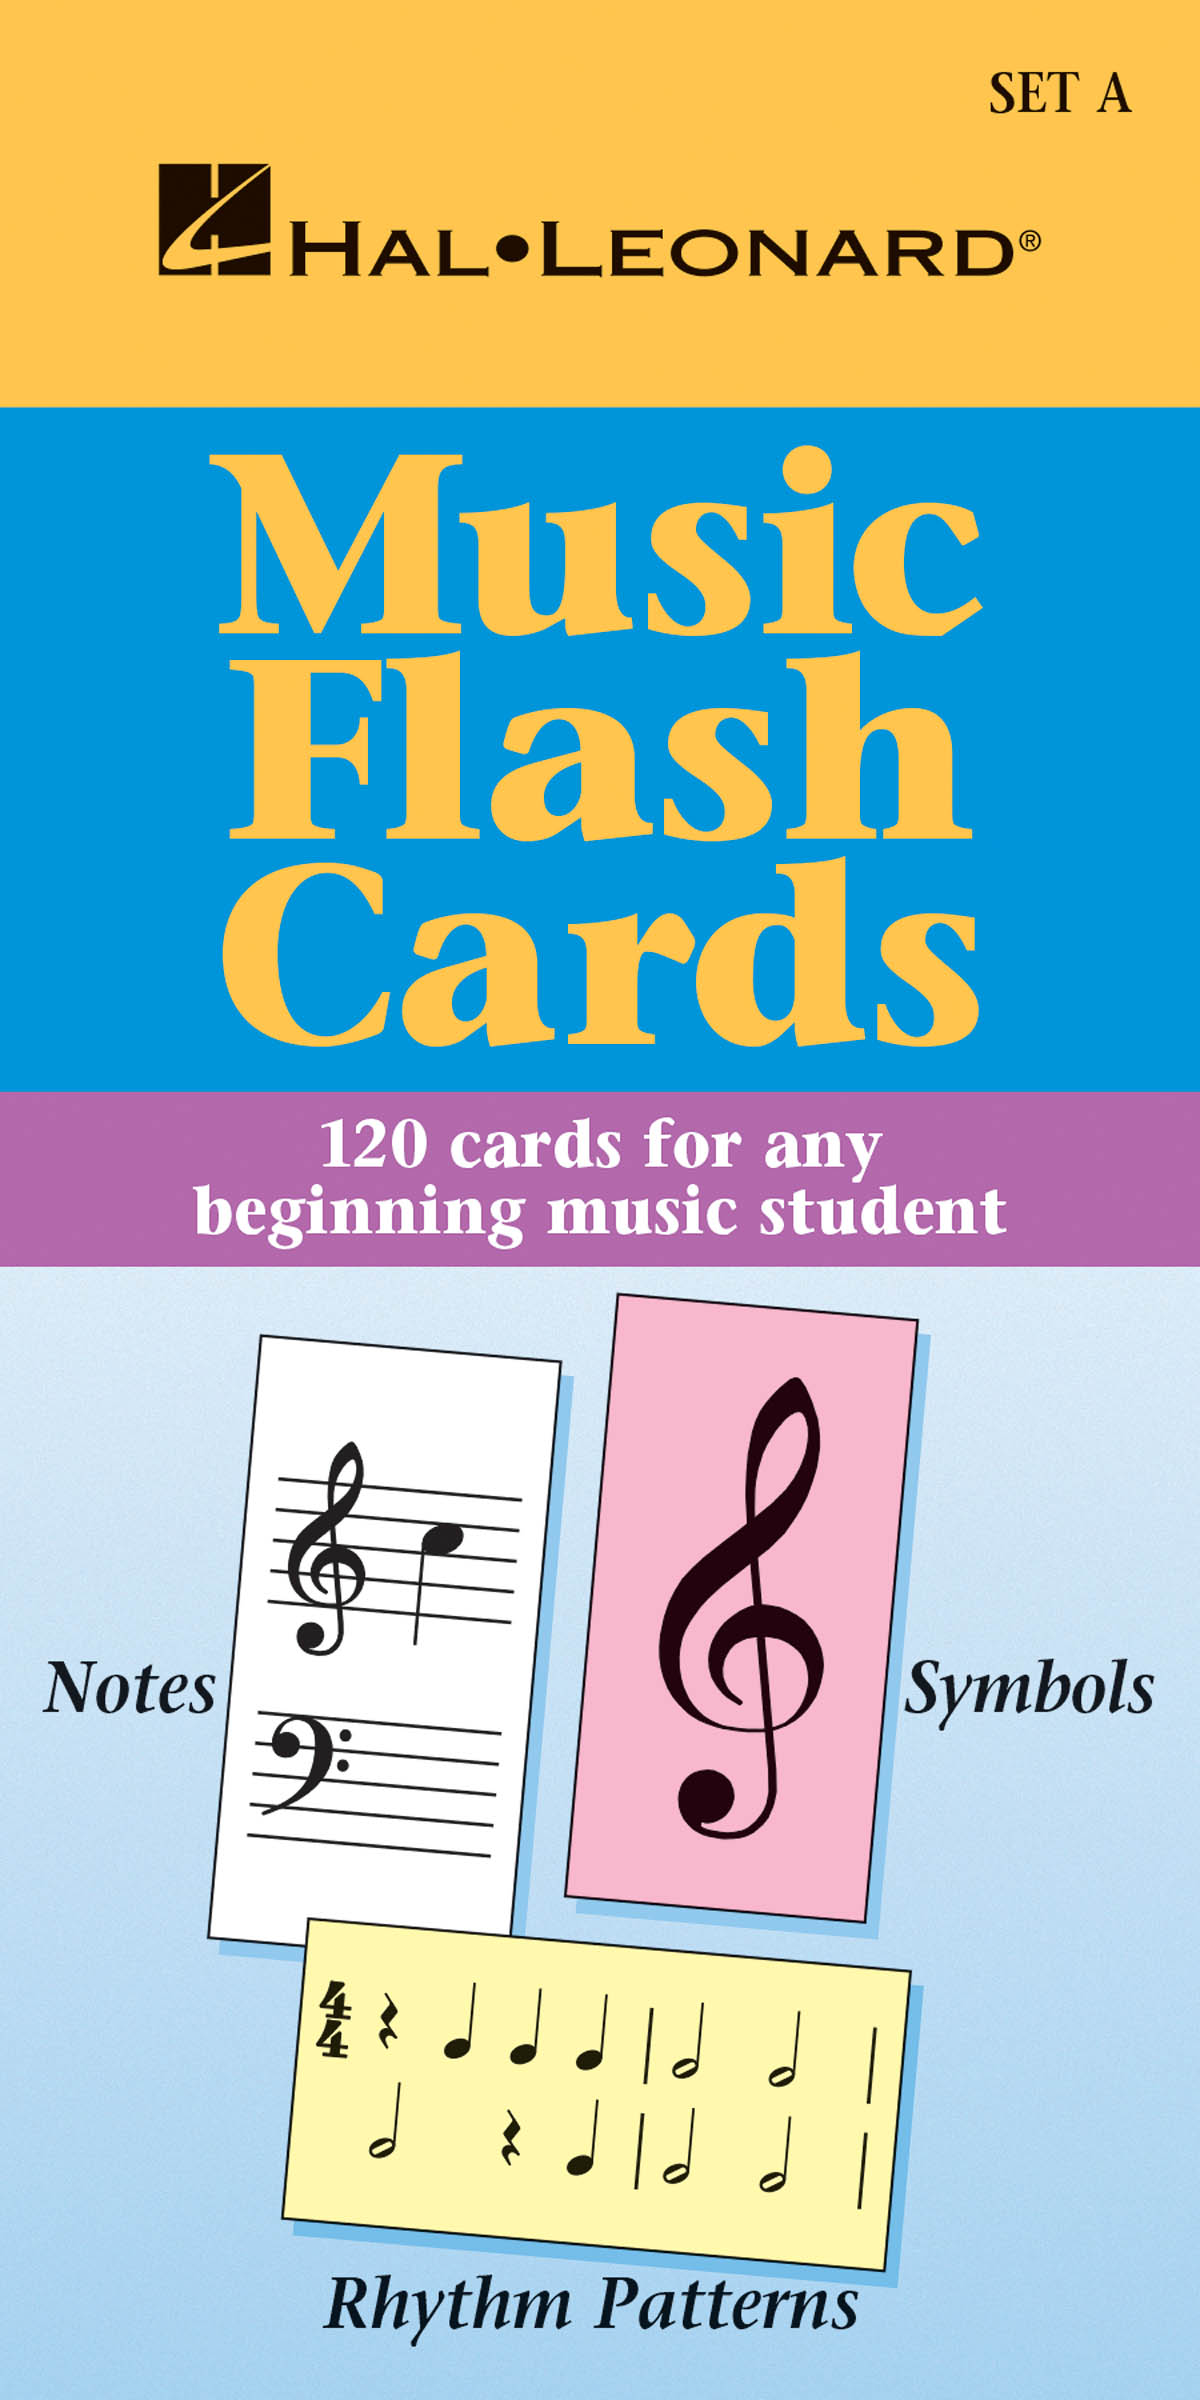 Music Flash Cards - Set A: Piano: Theory